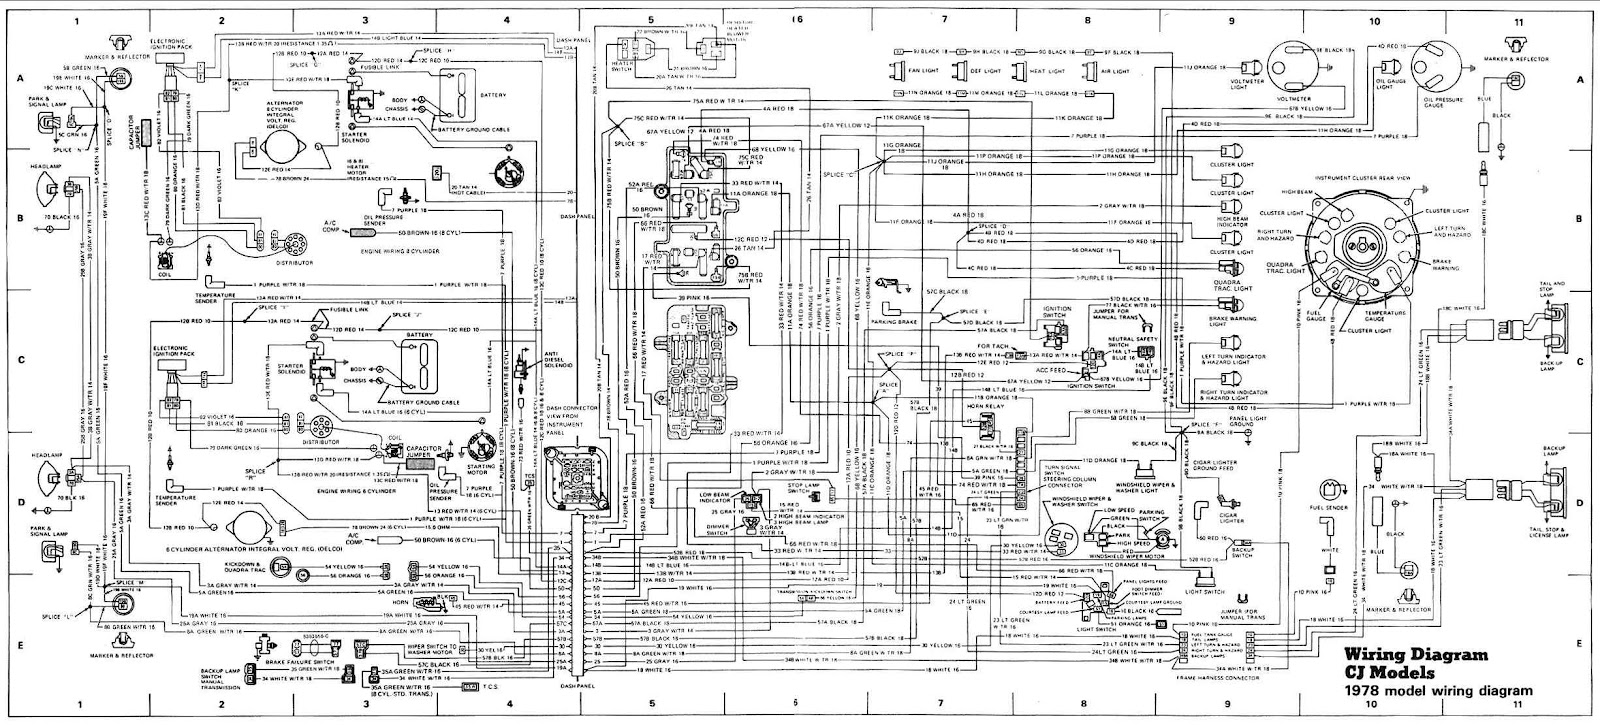 Jeep CJ Models 1978 Complete Electrical Wiring Diagram jeep stereo wiring diagram jeep free wiring diagrams 2003 jeep liberty radio wiring diagram at arjmand.co